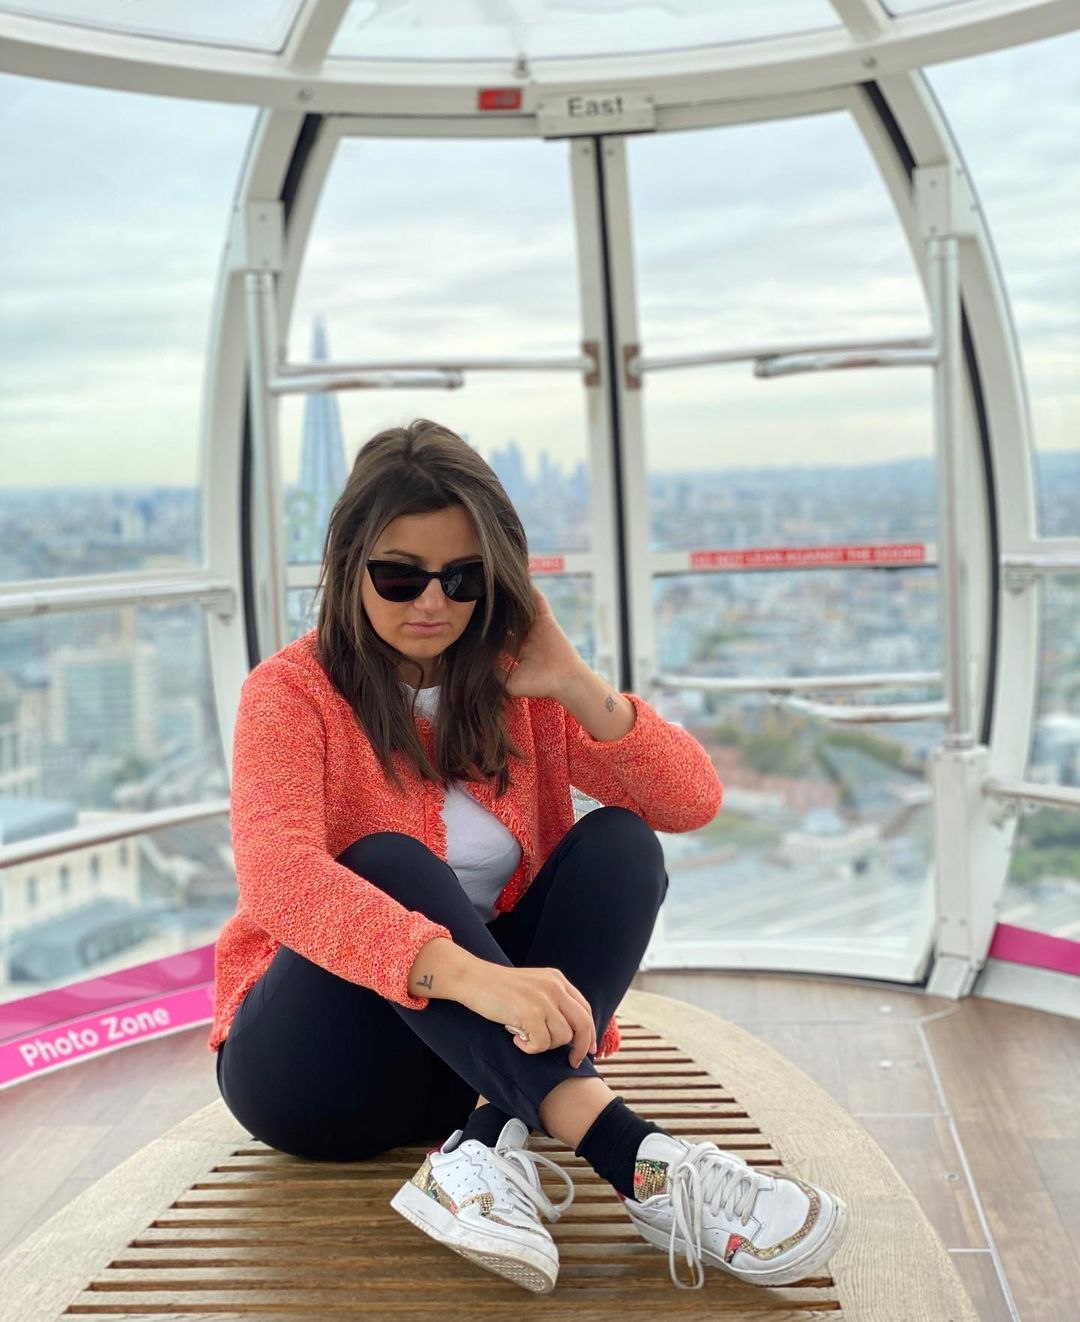 Destinasi wisata favorit london eye